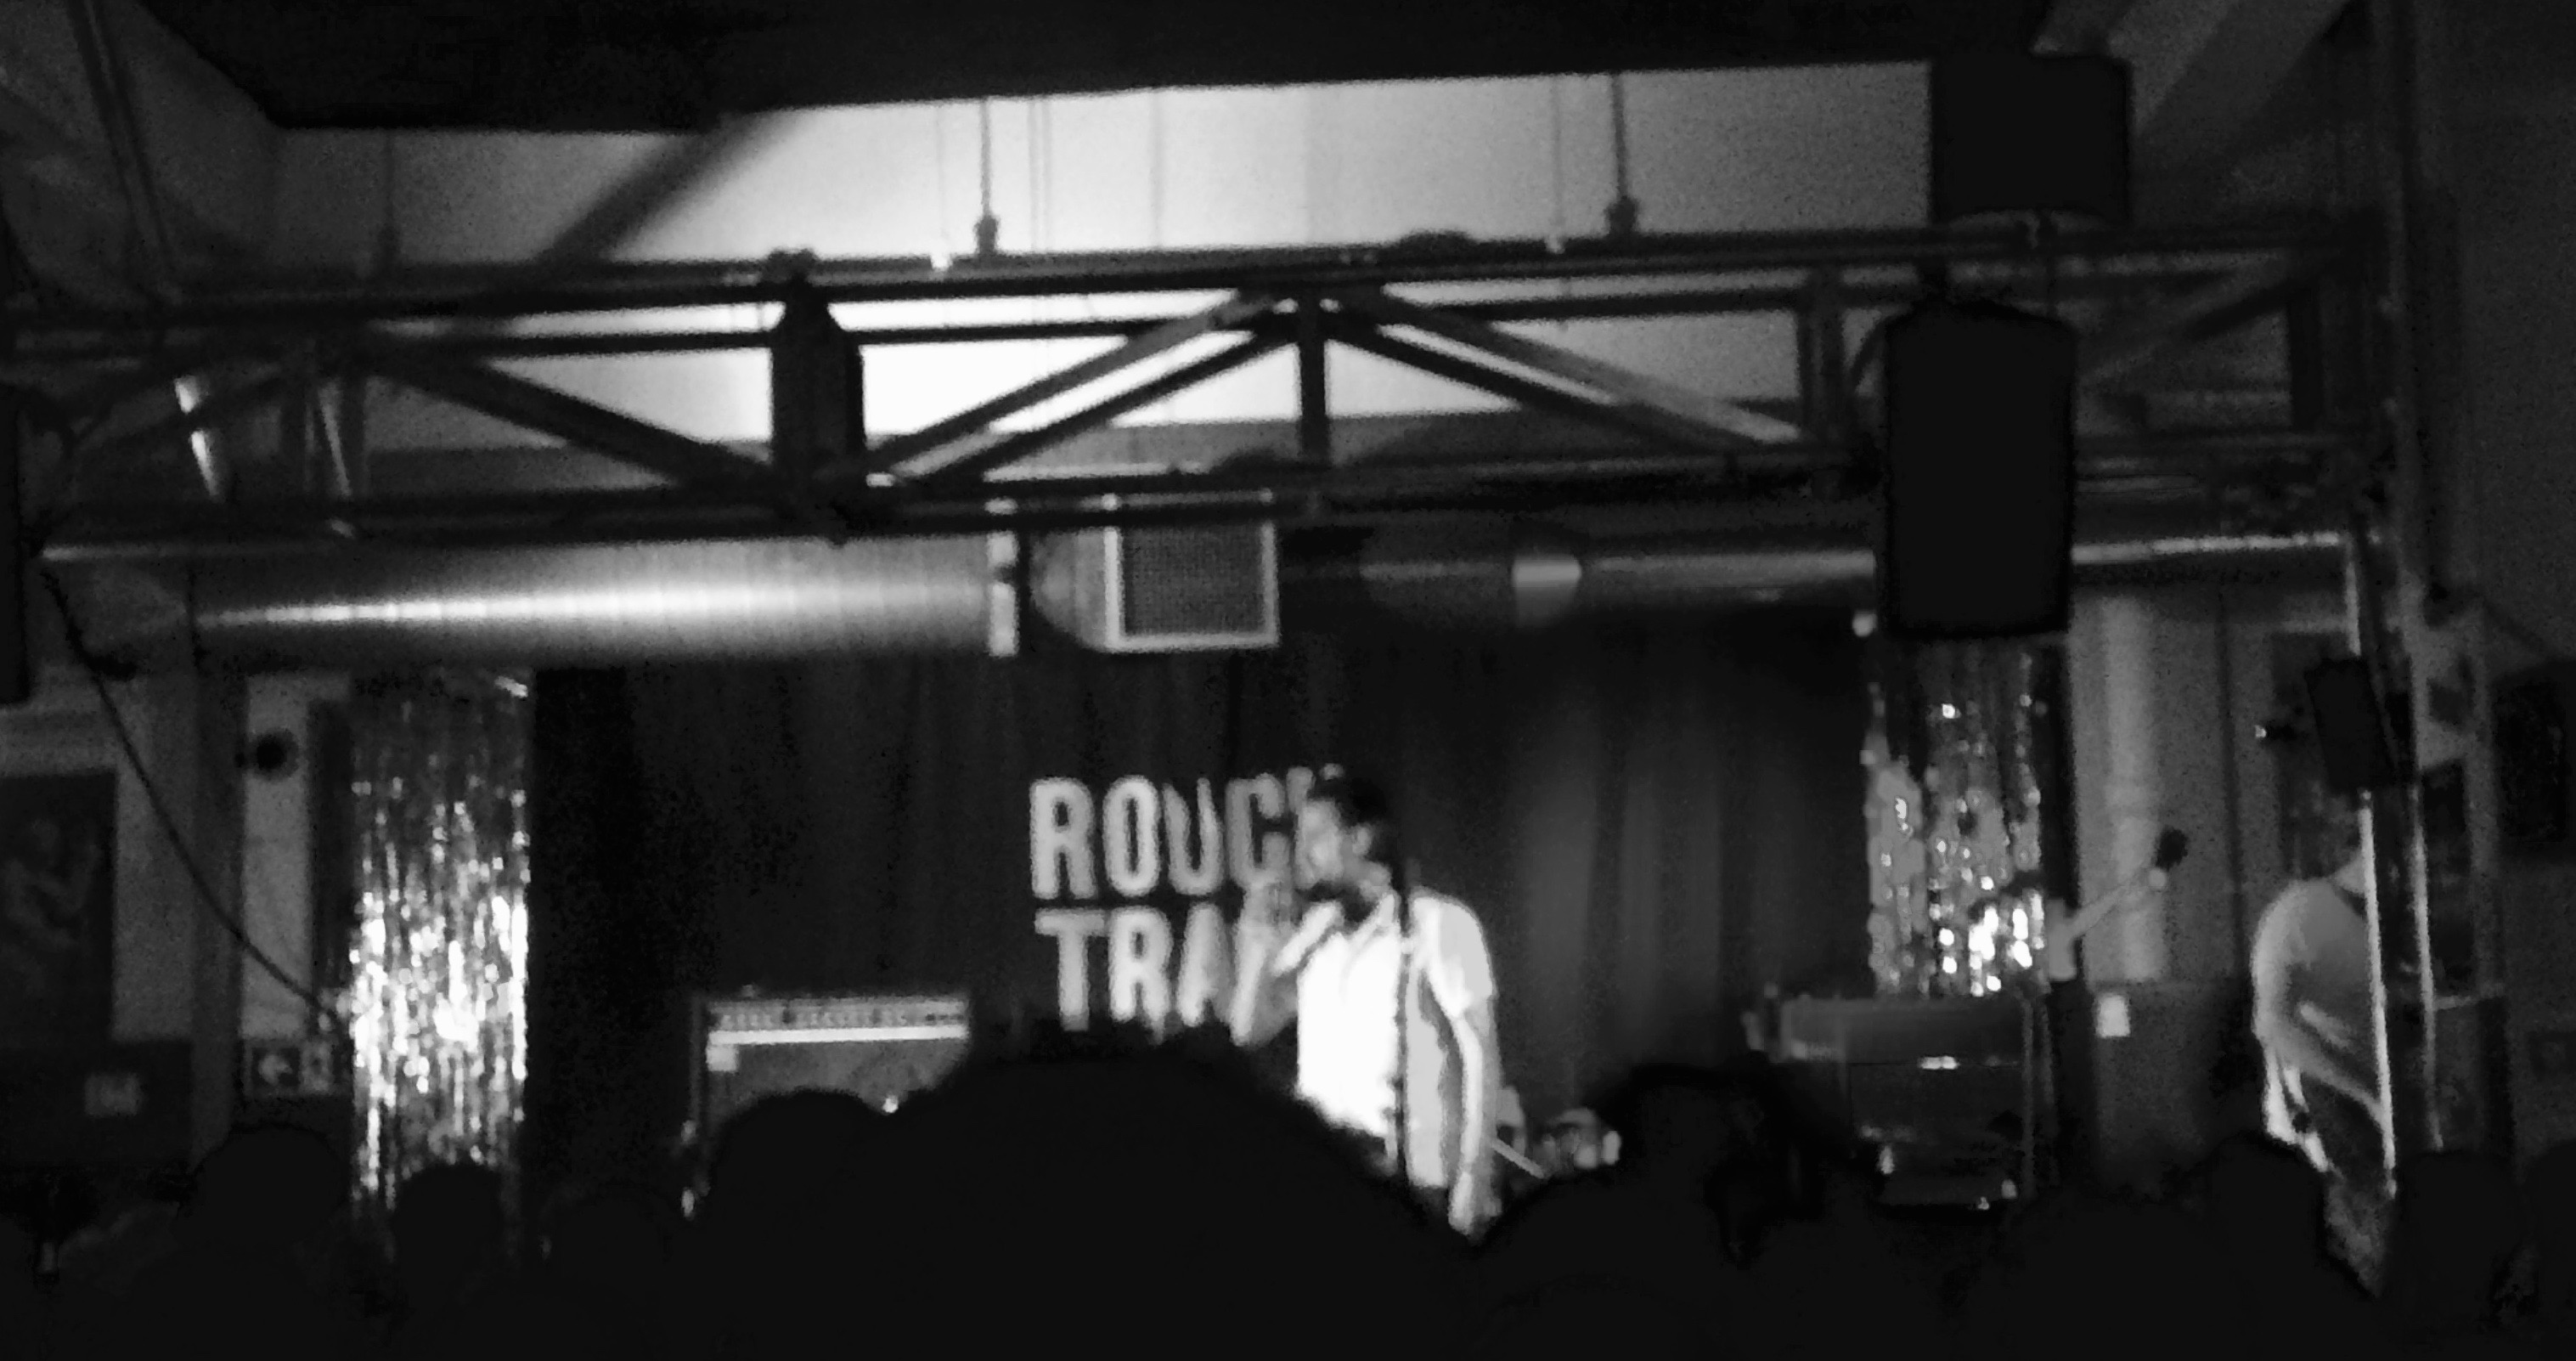 Wild Beasts bring new album, Boy King, to an exclusive show at Rough Trade East, 5/8/16